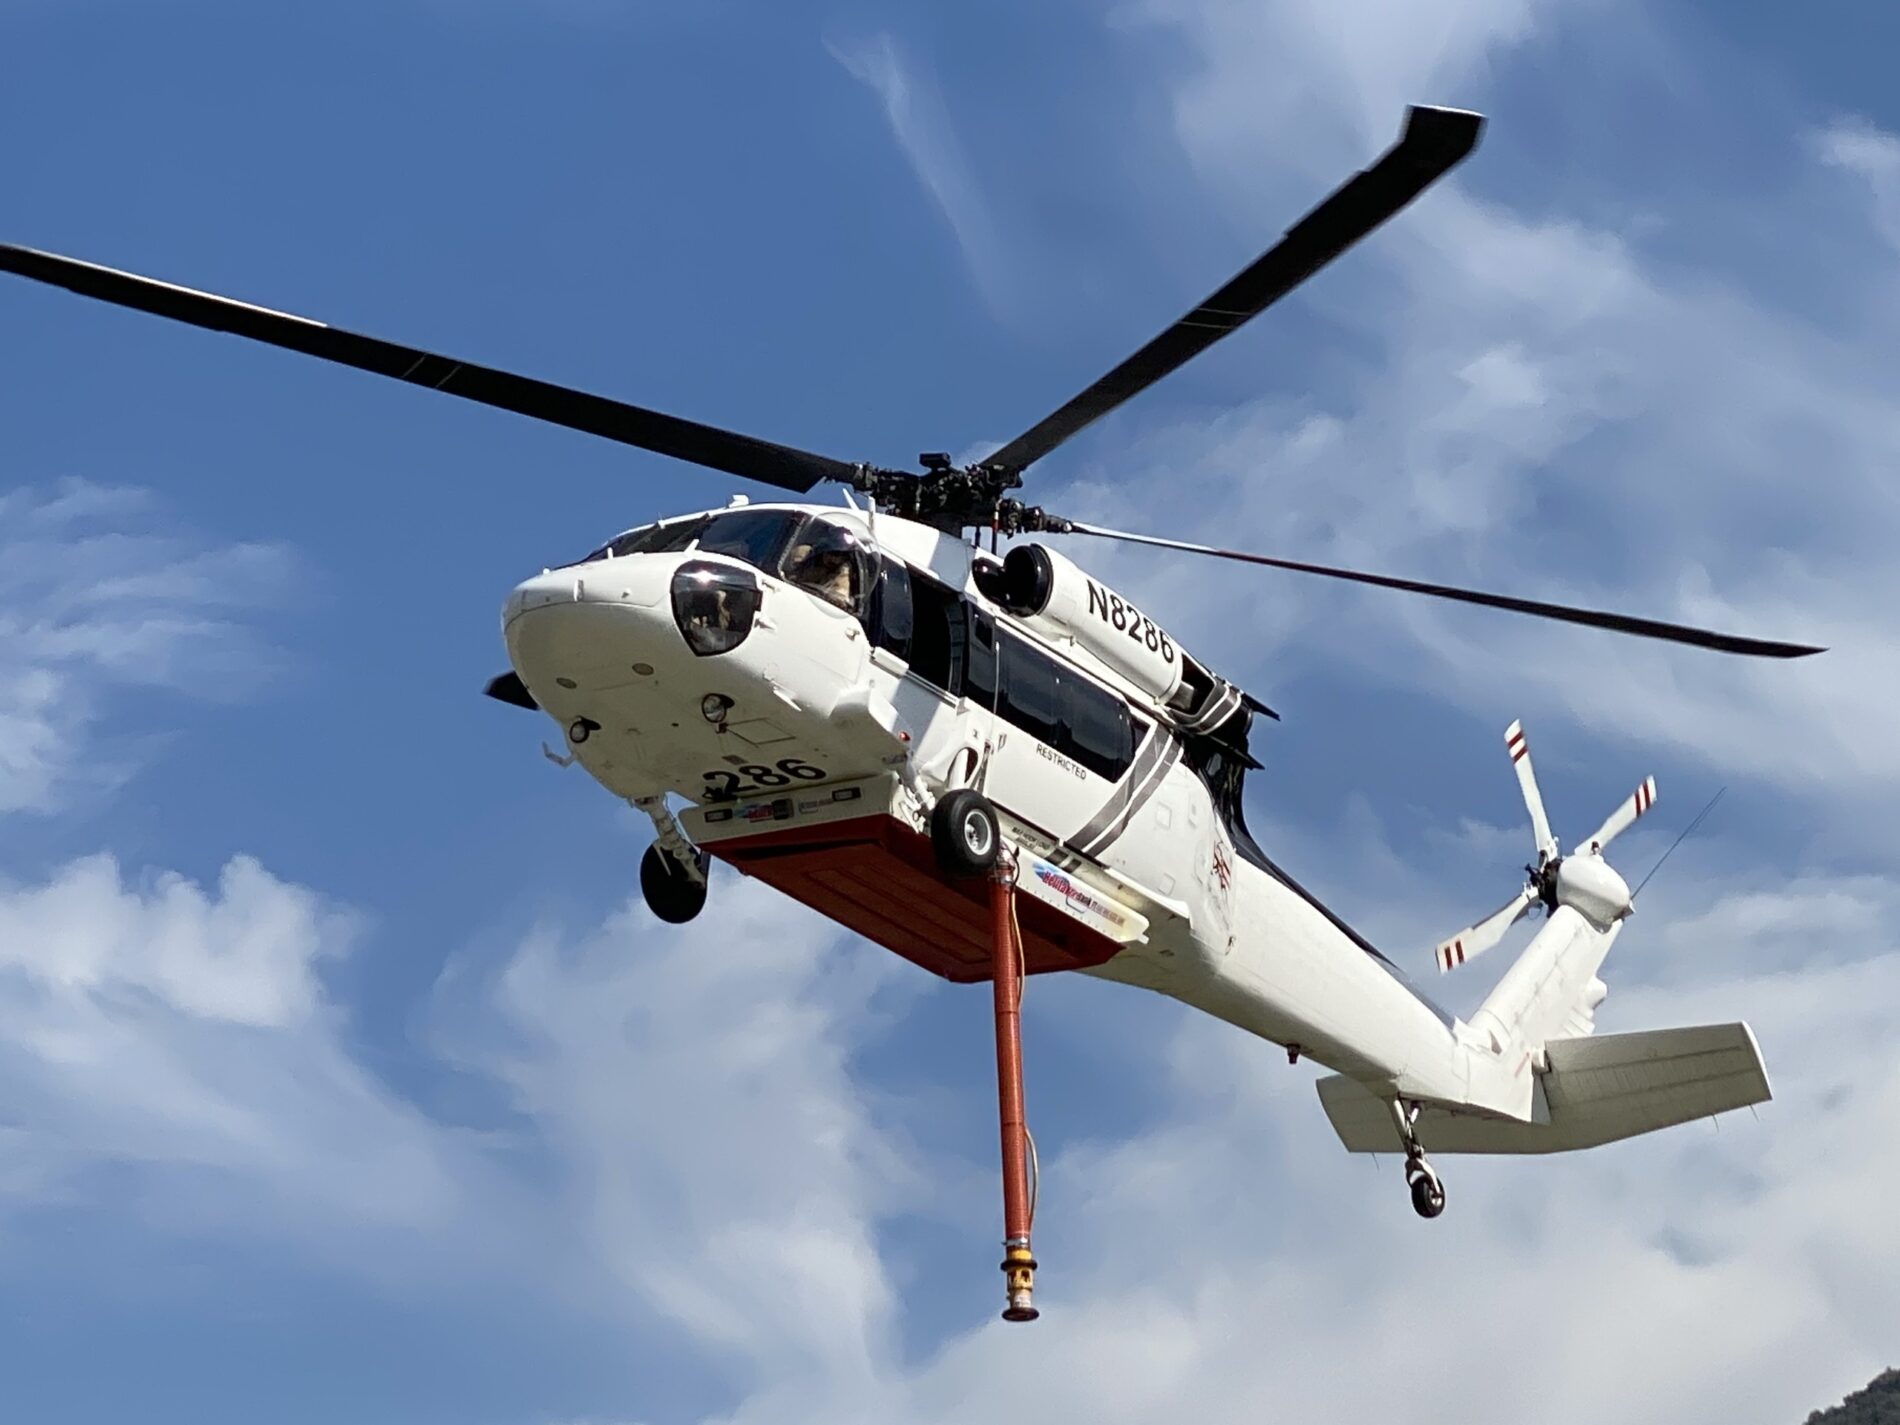 High Performance Helicopters Corp